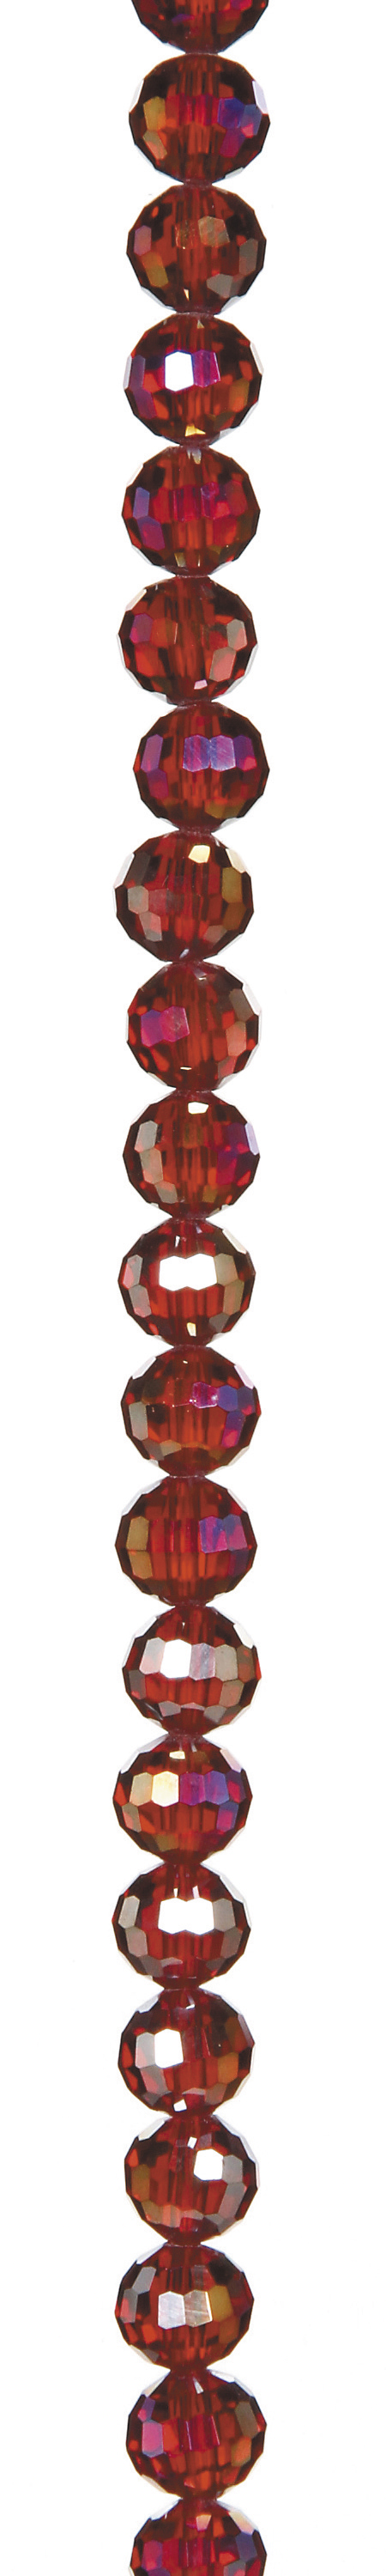 "7"" Bead Strands - Lt. Siam AB Crystal Faceted Rounds, 8mm"